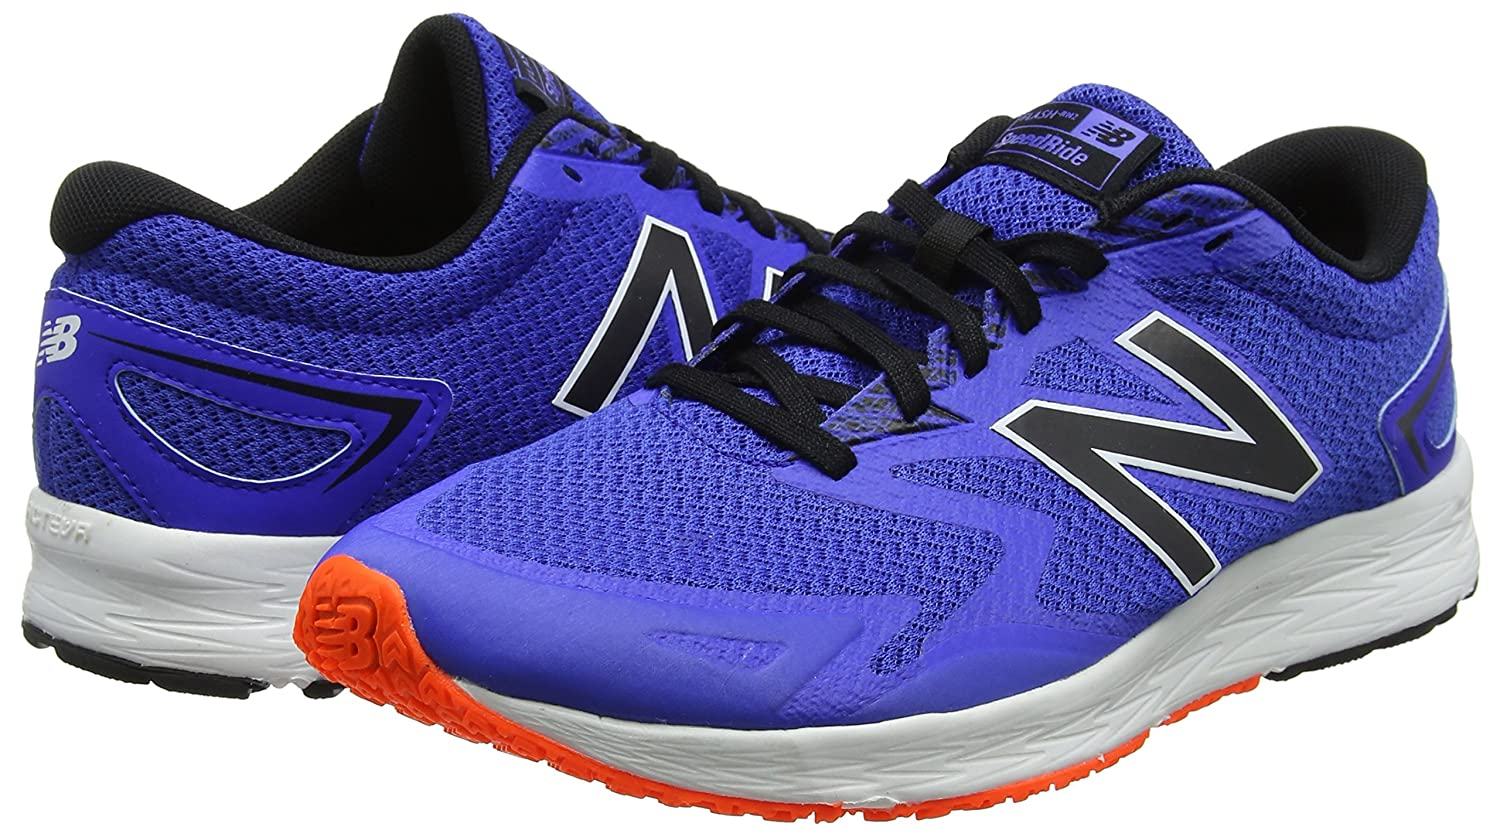 New New New Balance Herren MFLSHL Flash V2 Laufschuhe, 83a4cd